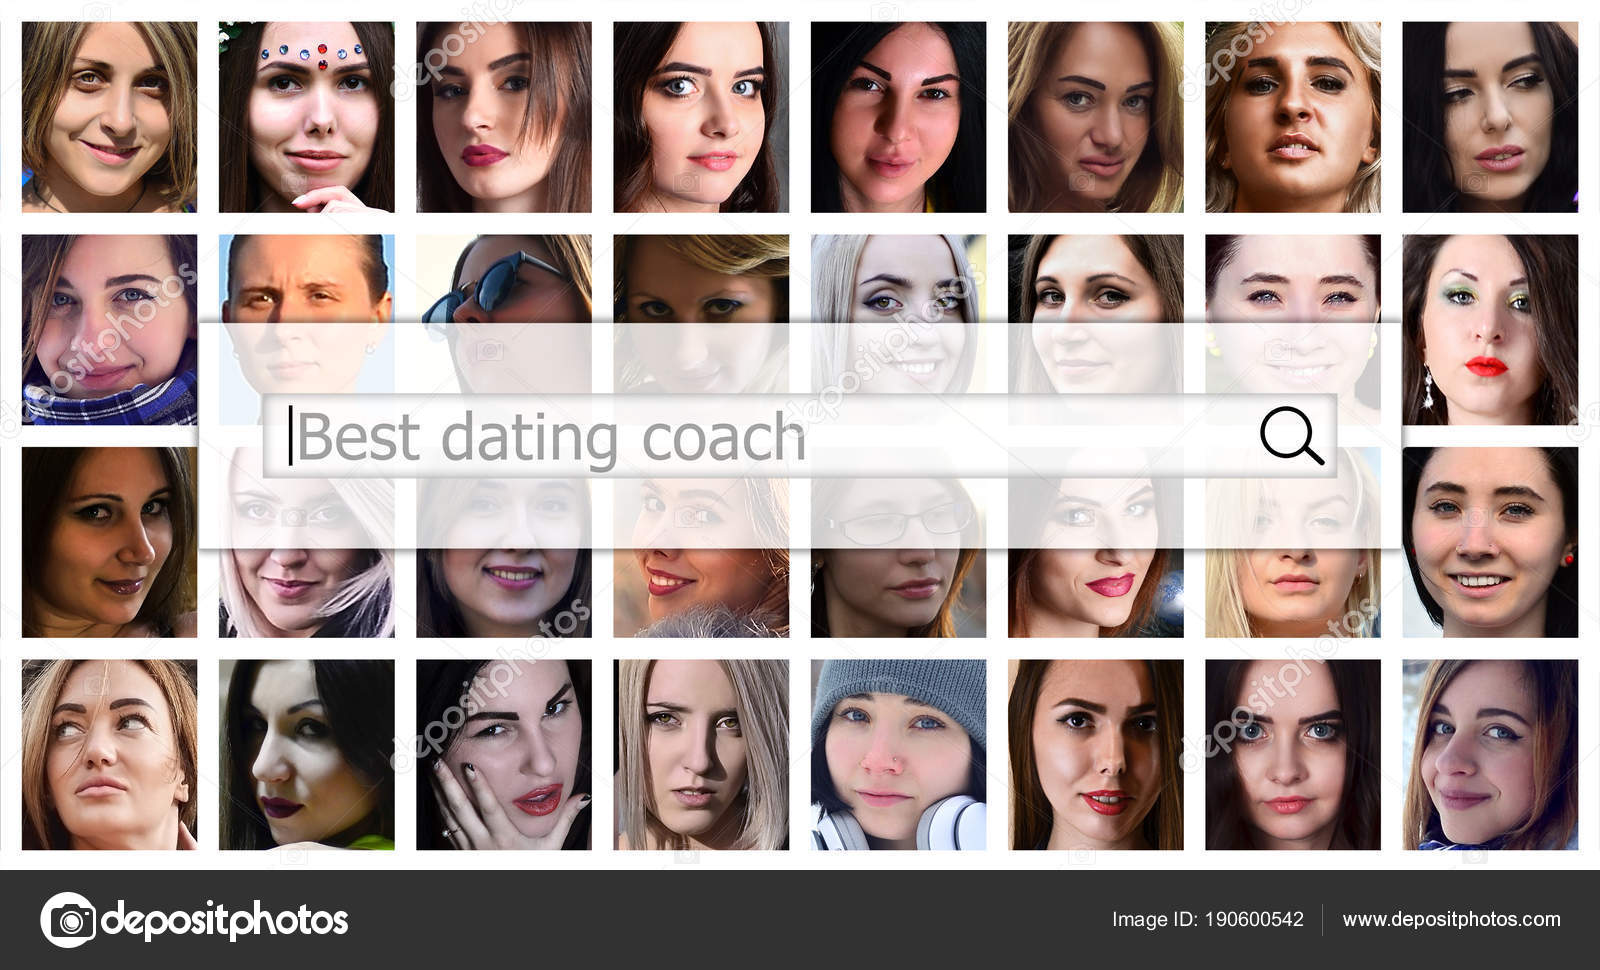 Search dating